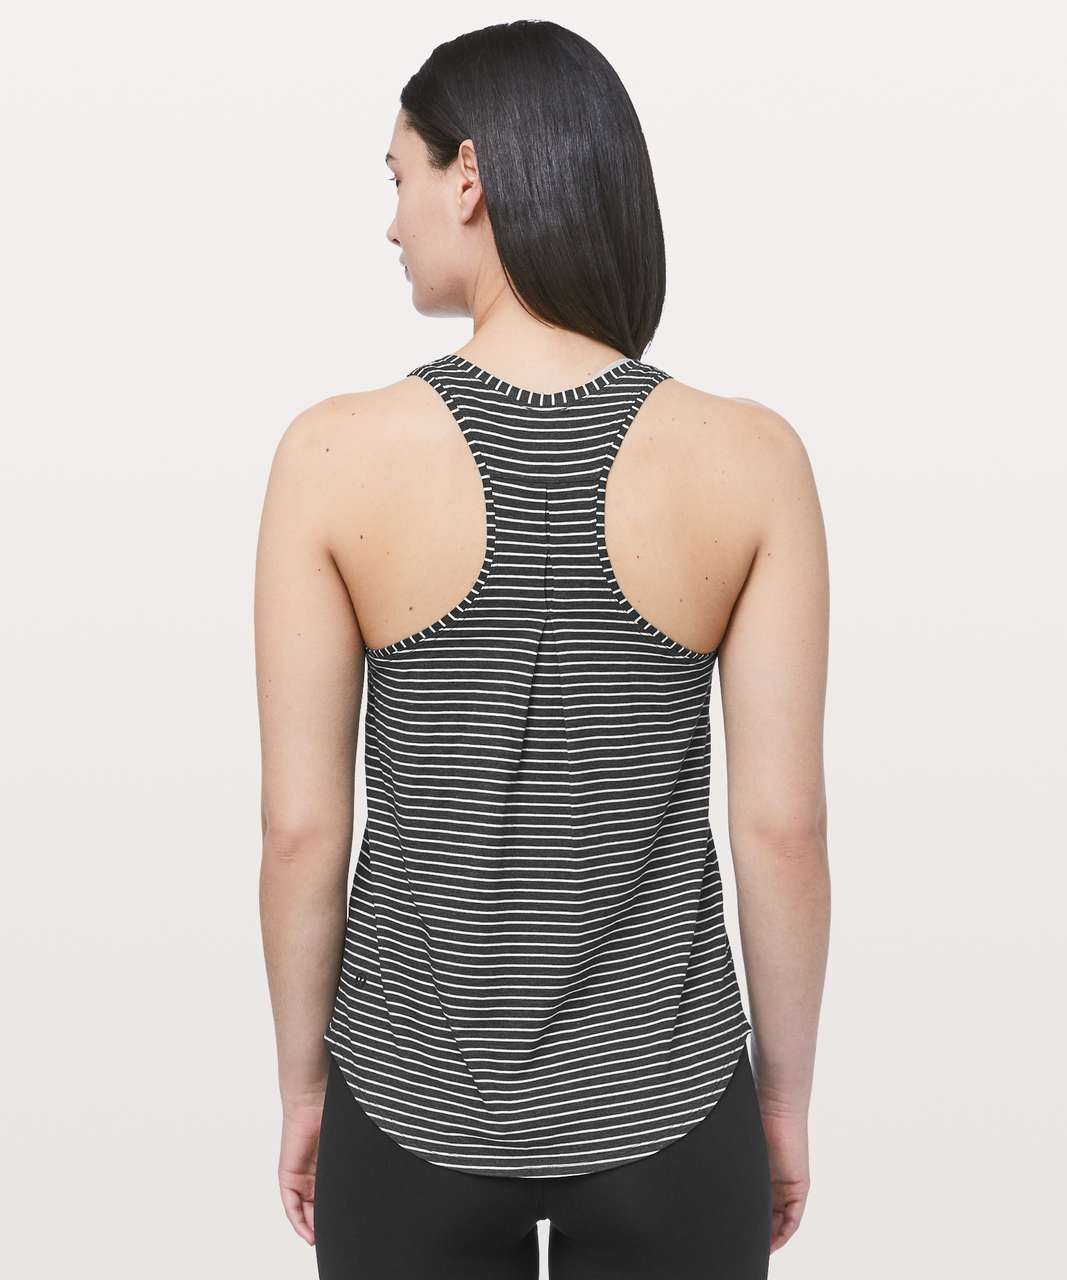 Lululemon Love Tank *Pleated - Modern Stripe Heathered Black White